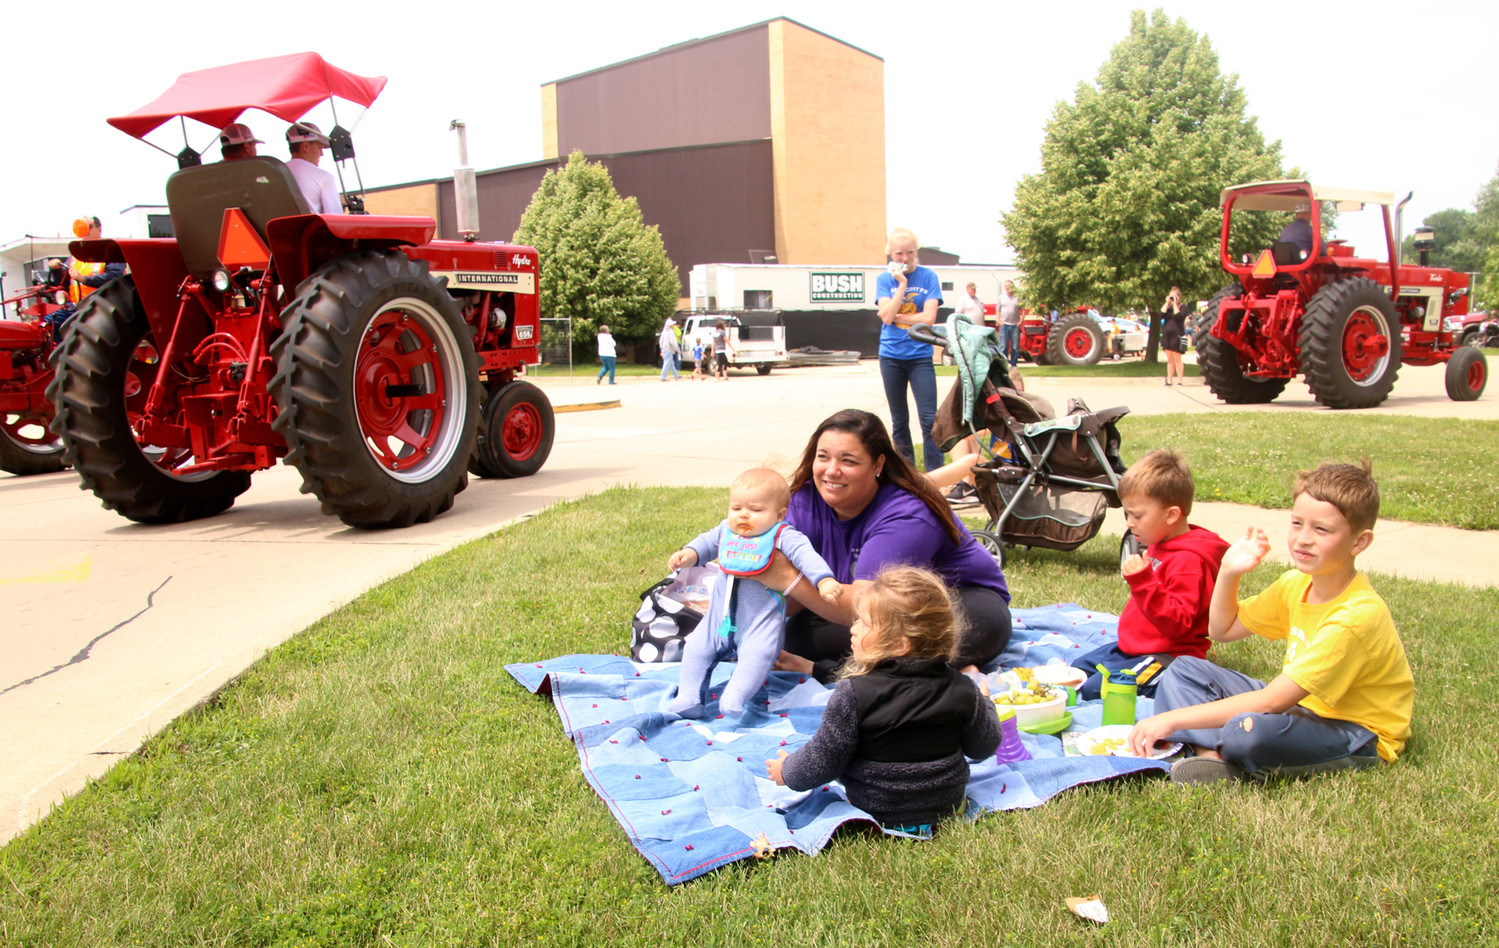 Nanny Nicole Thorington, of Davenport, brought the Brooks children, of Eldridge to watch the tractor parade at North Scott High School. The kids are: Tristen, 8, Ryder, 5, Abby, 3 and Dexter, eigtht months.